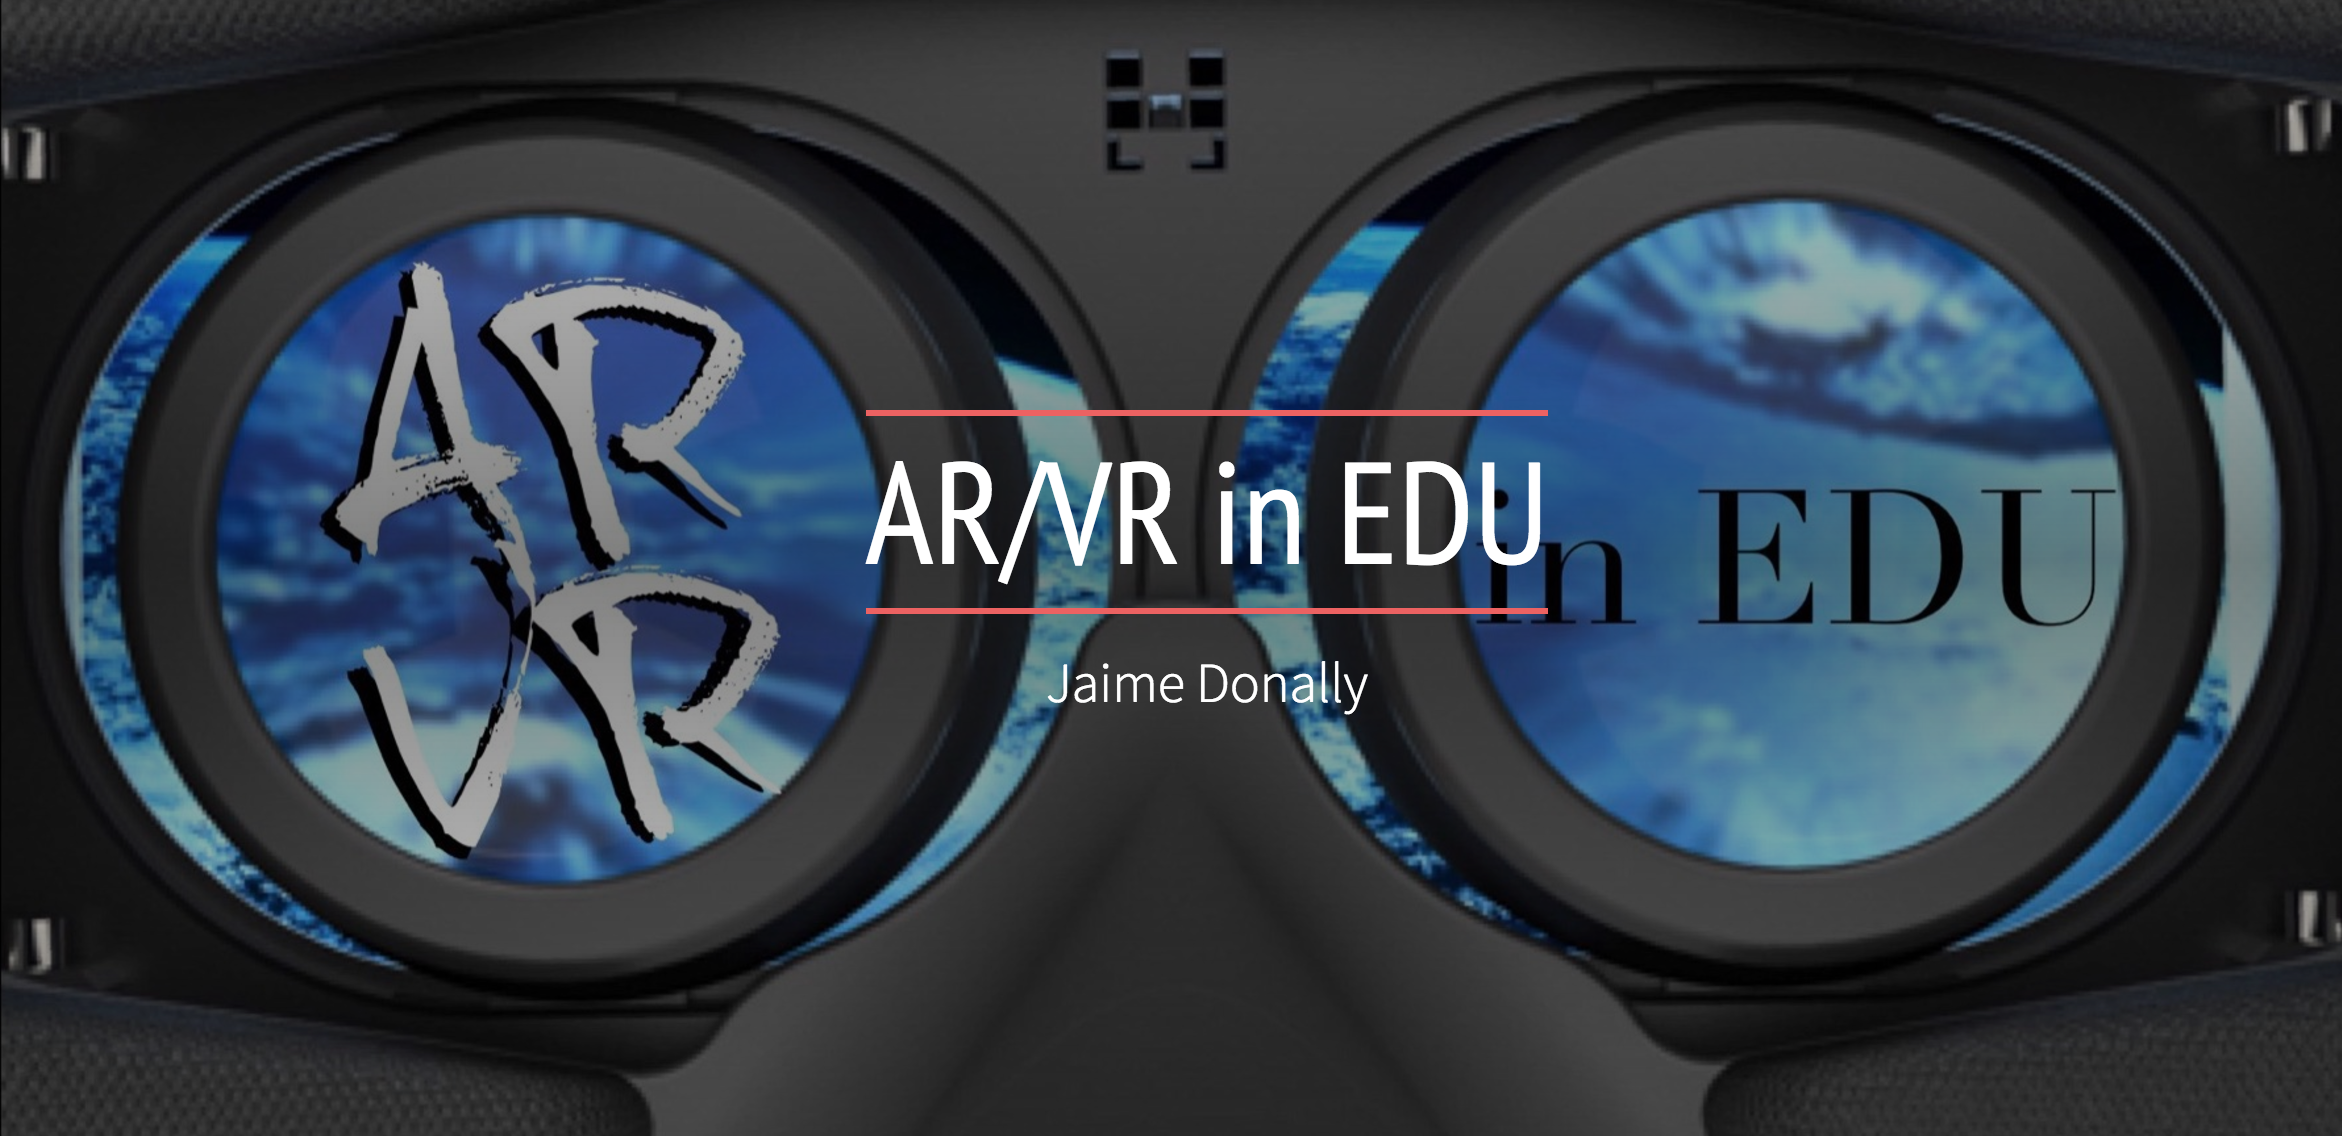 Click here to visit Jaime's site where she has shared some great AR/VR resources